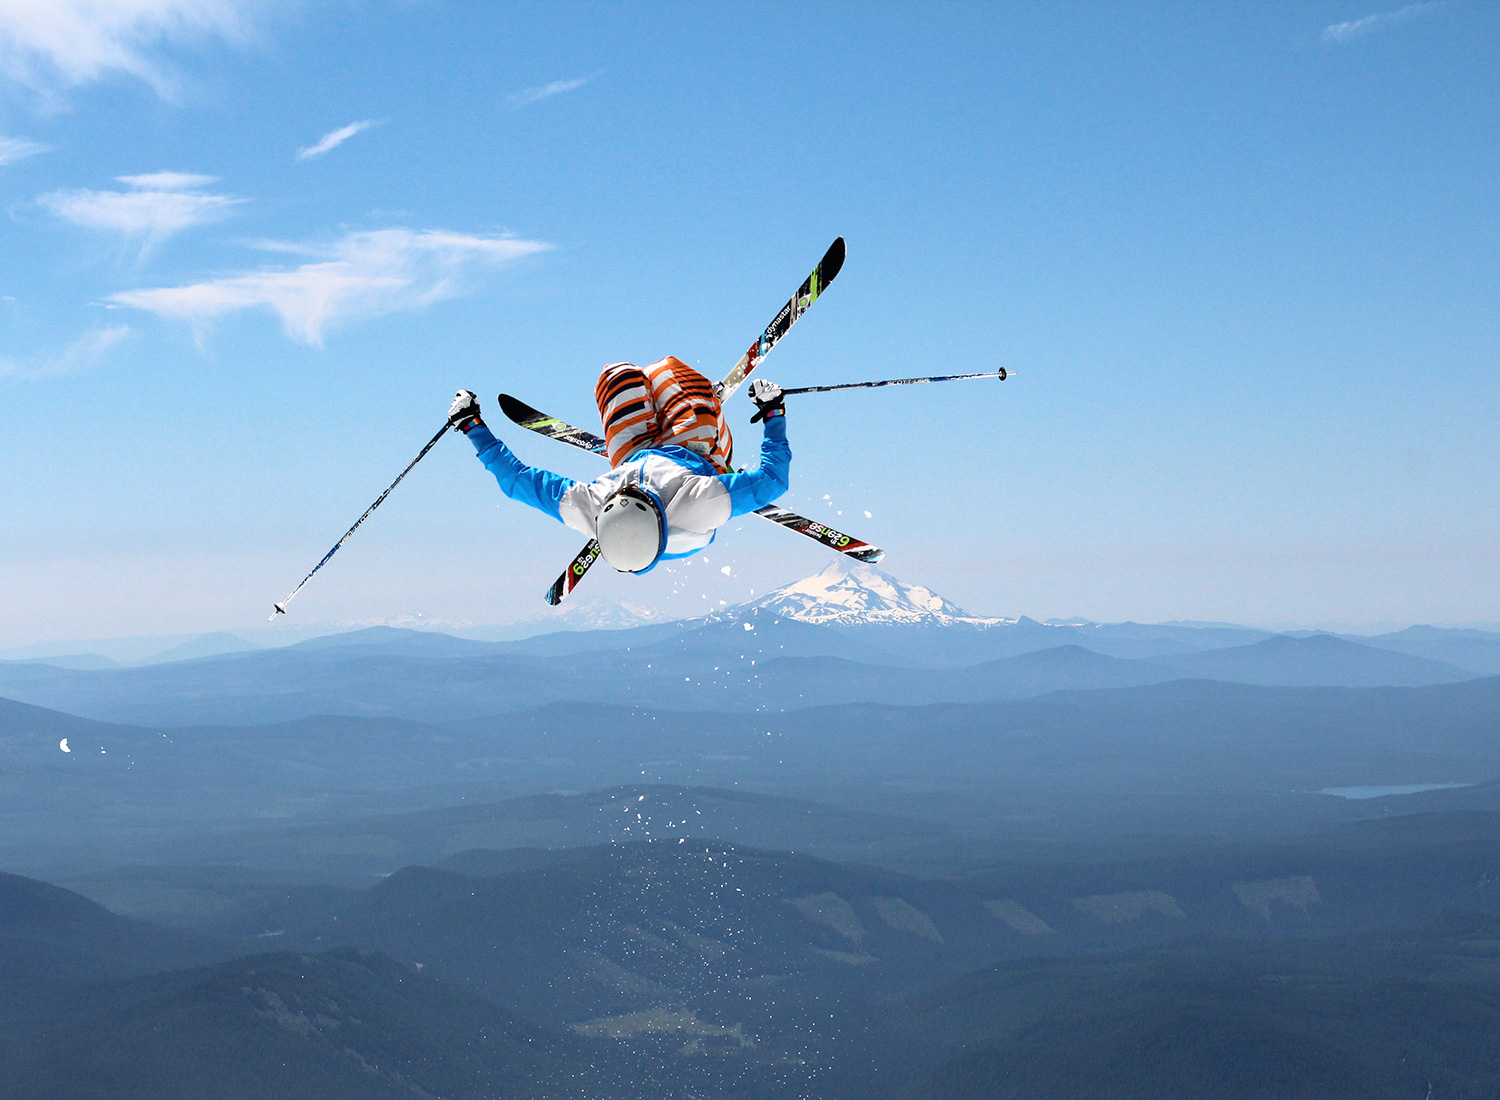 burke-alder-freestyle-skiing-pictures.jpg